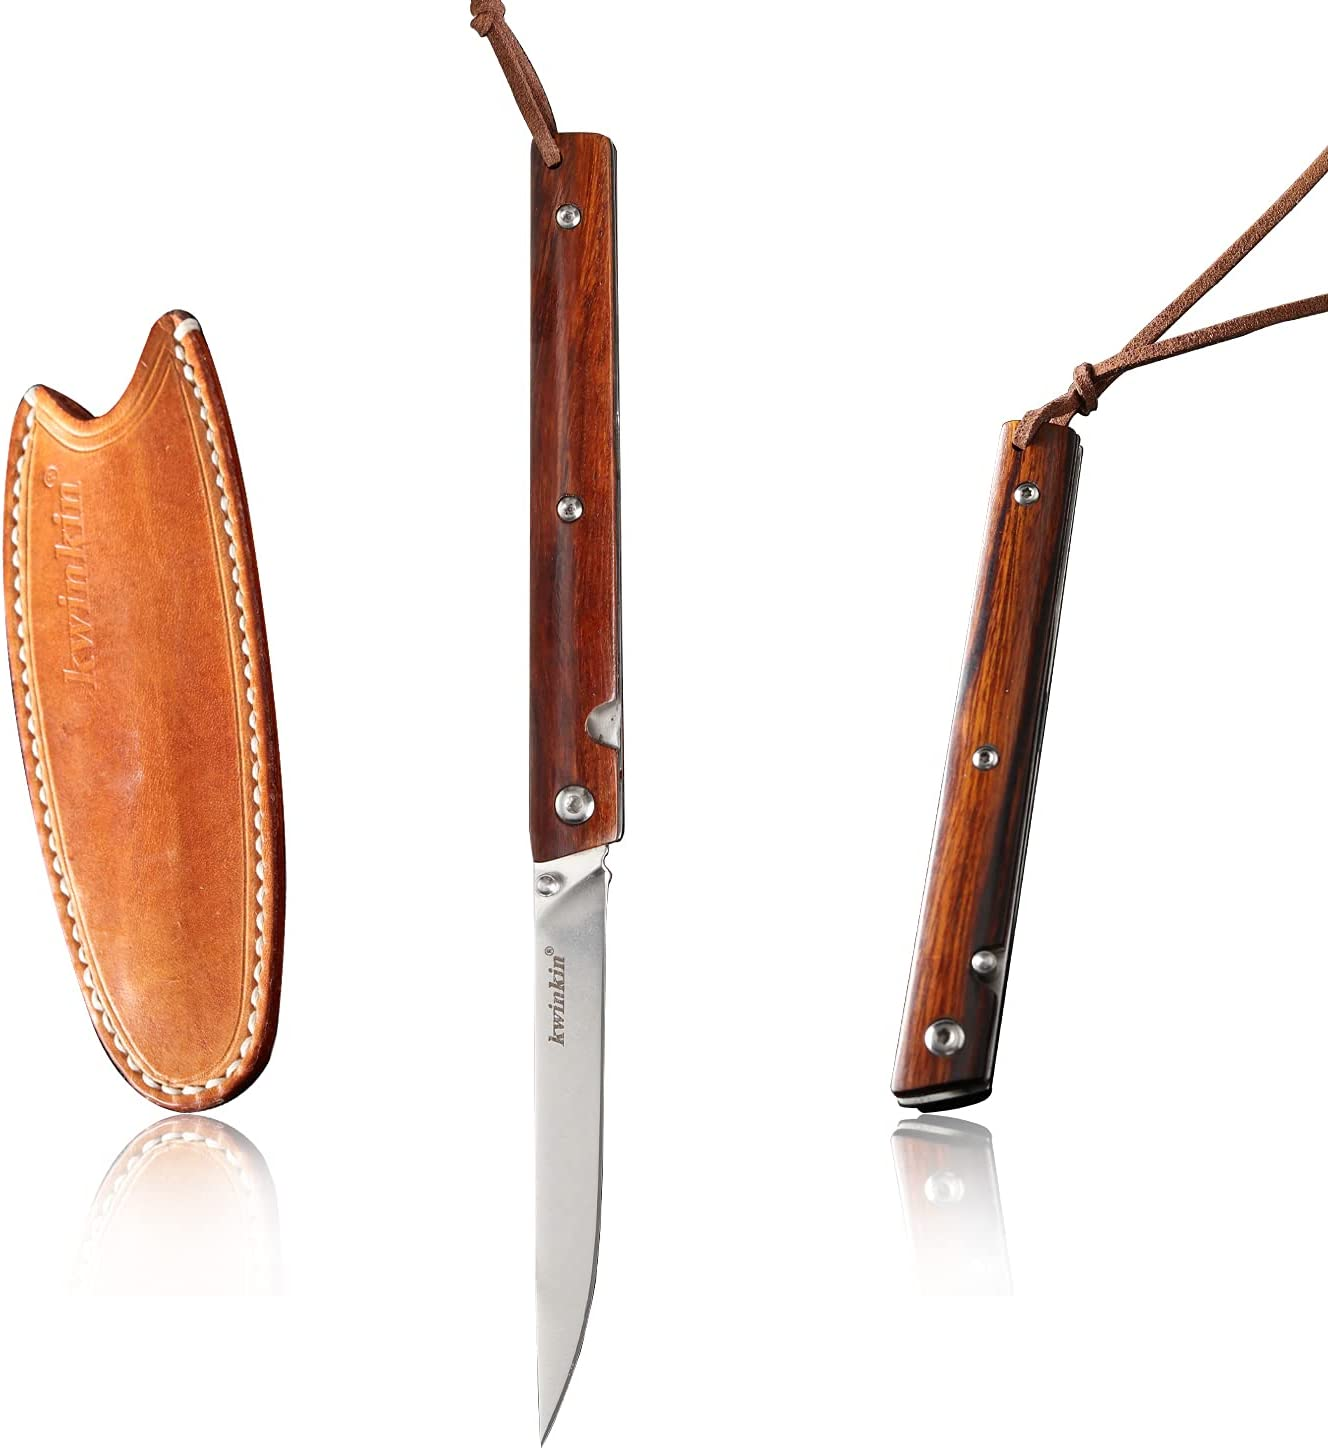 Max 56% OFF KWINKIN Outdoor Camping Knife 3.5